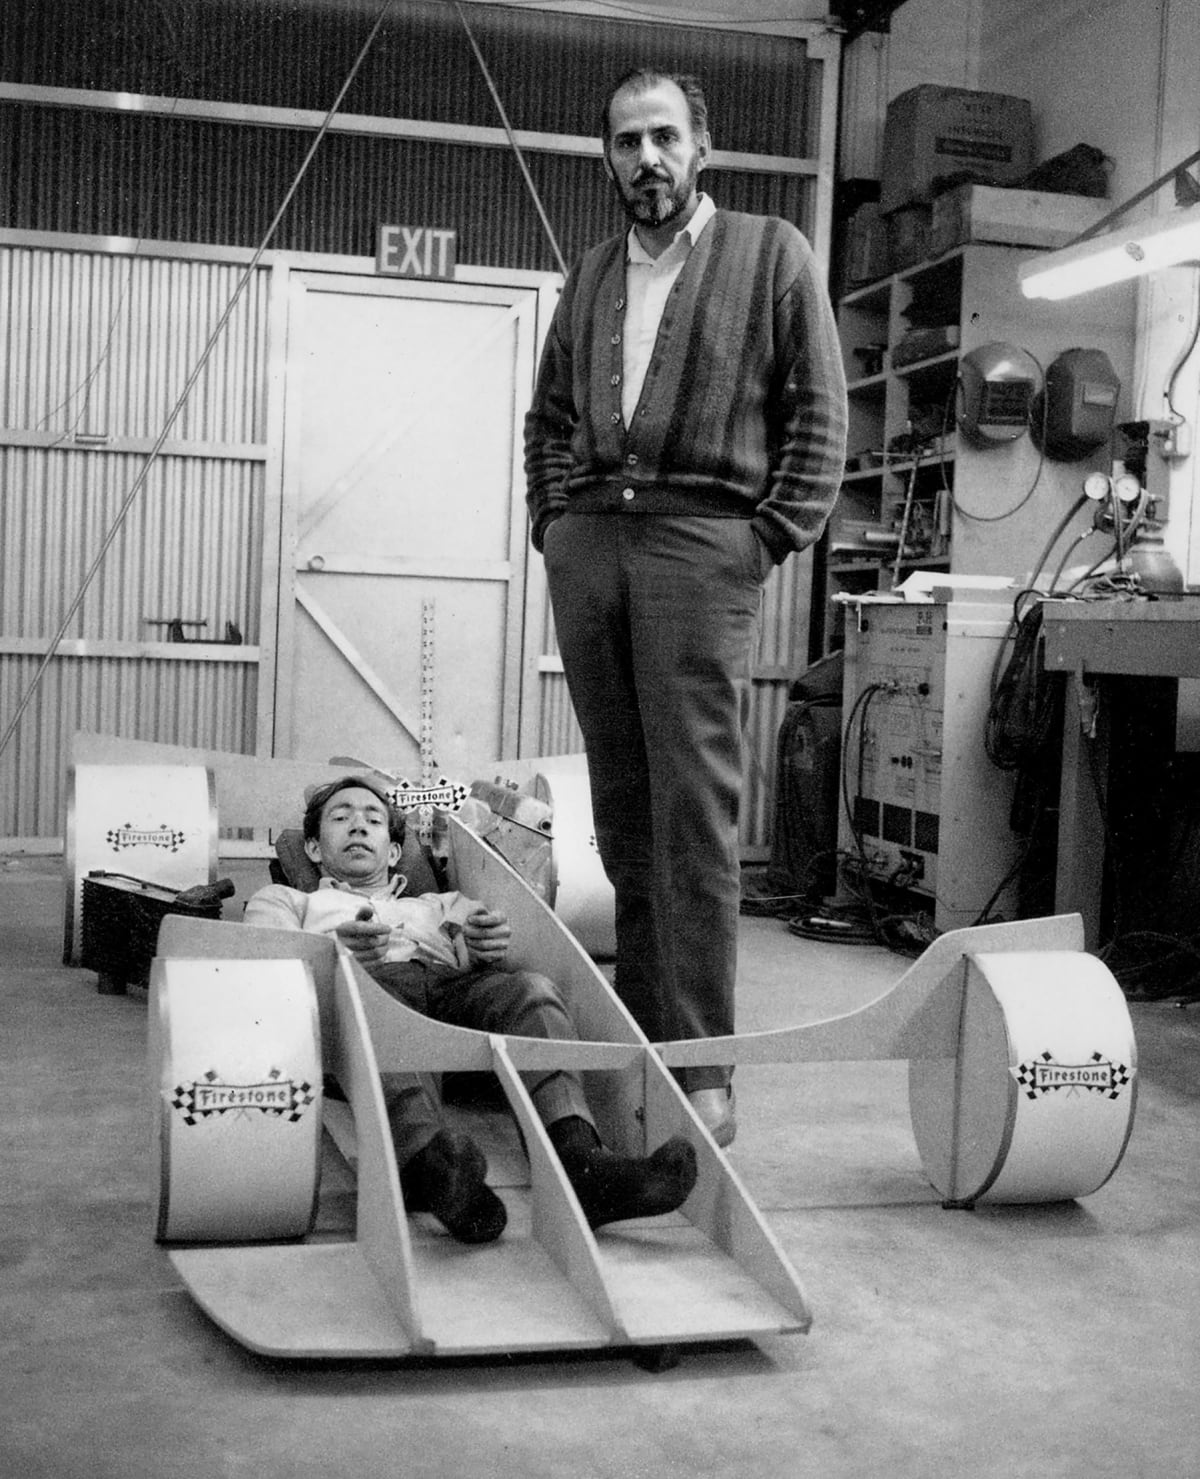 Dare to dream? Dream small … The idea man, Nichols towering over designer Trevor Harris who's crammed into a mock-up of the mysterious Shadow racecar.